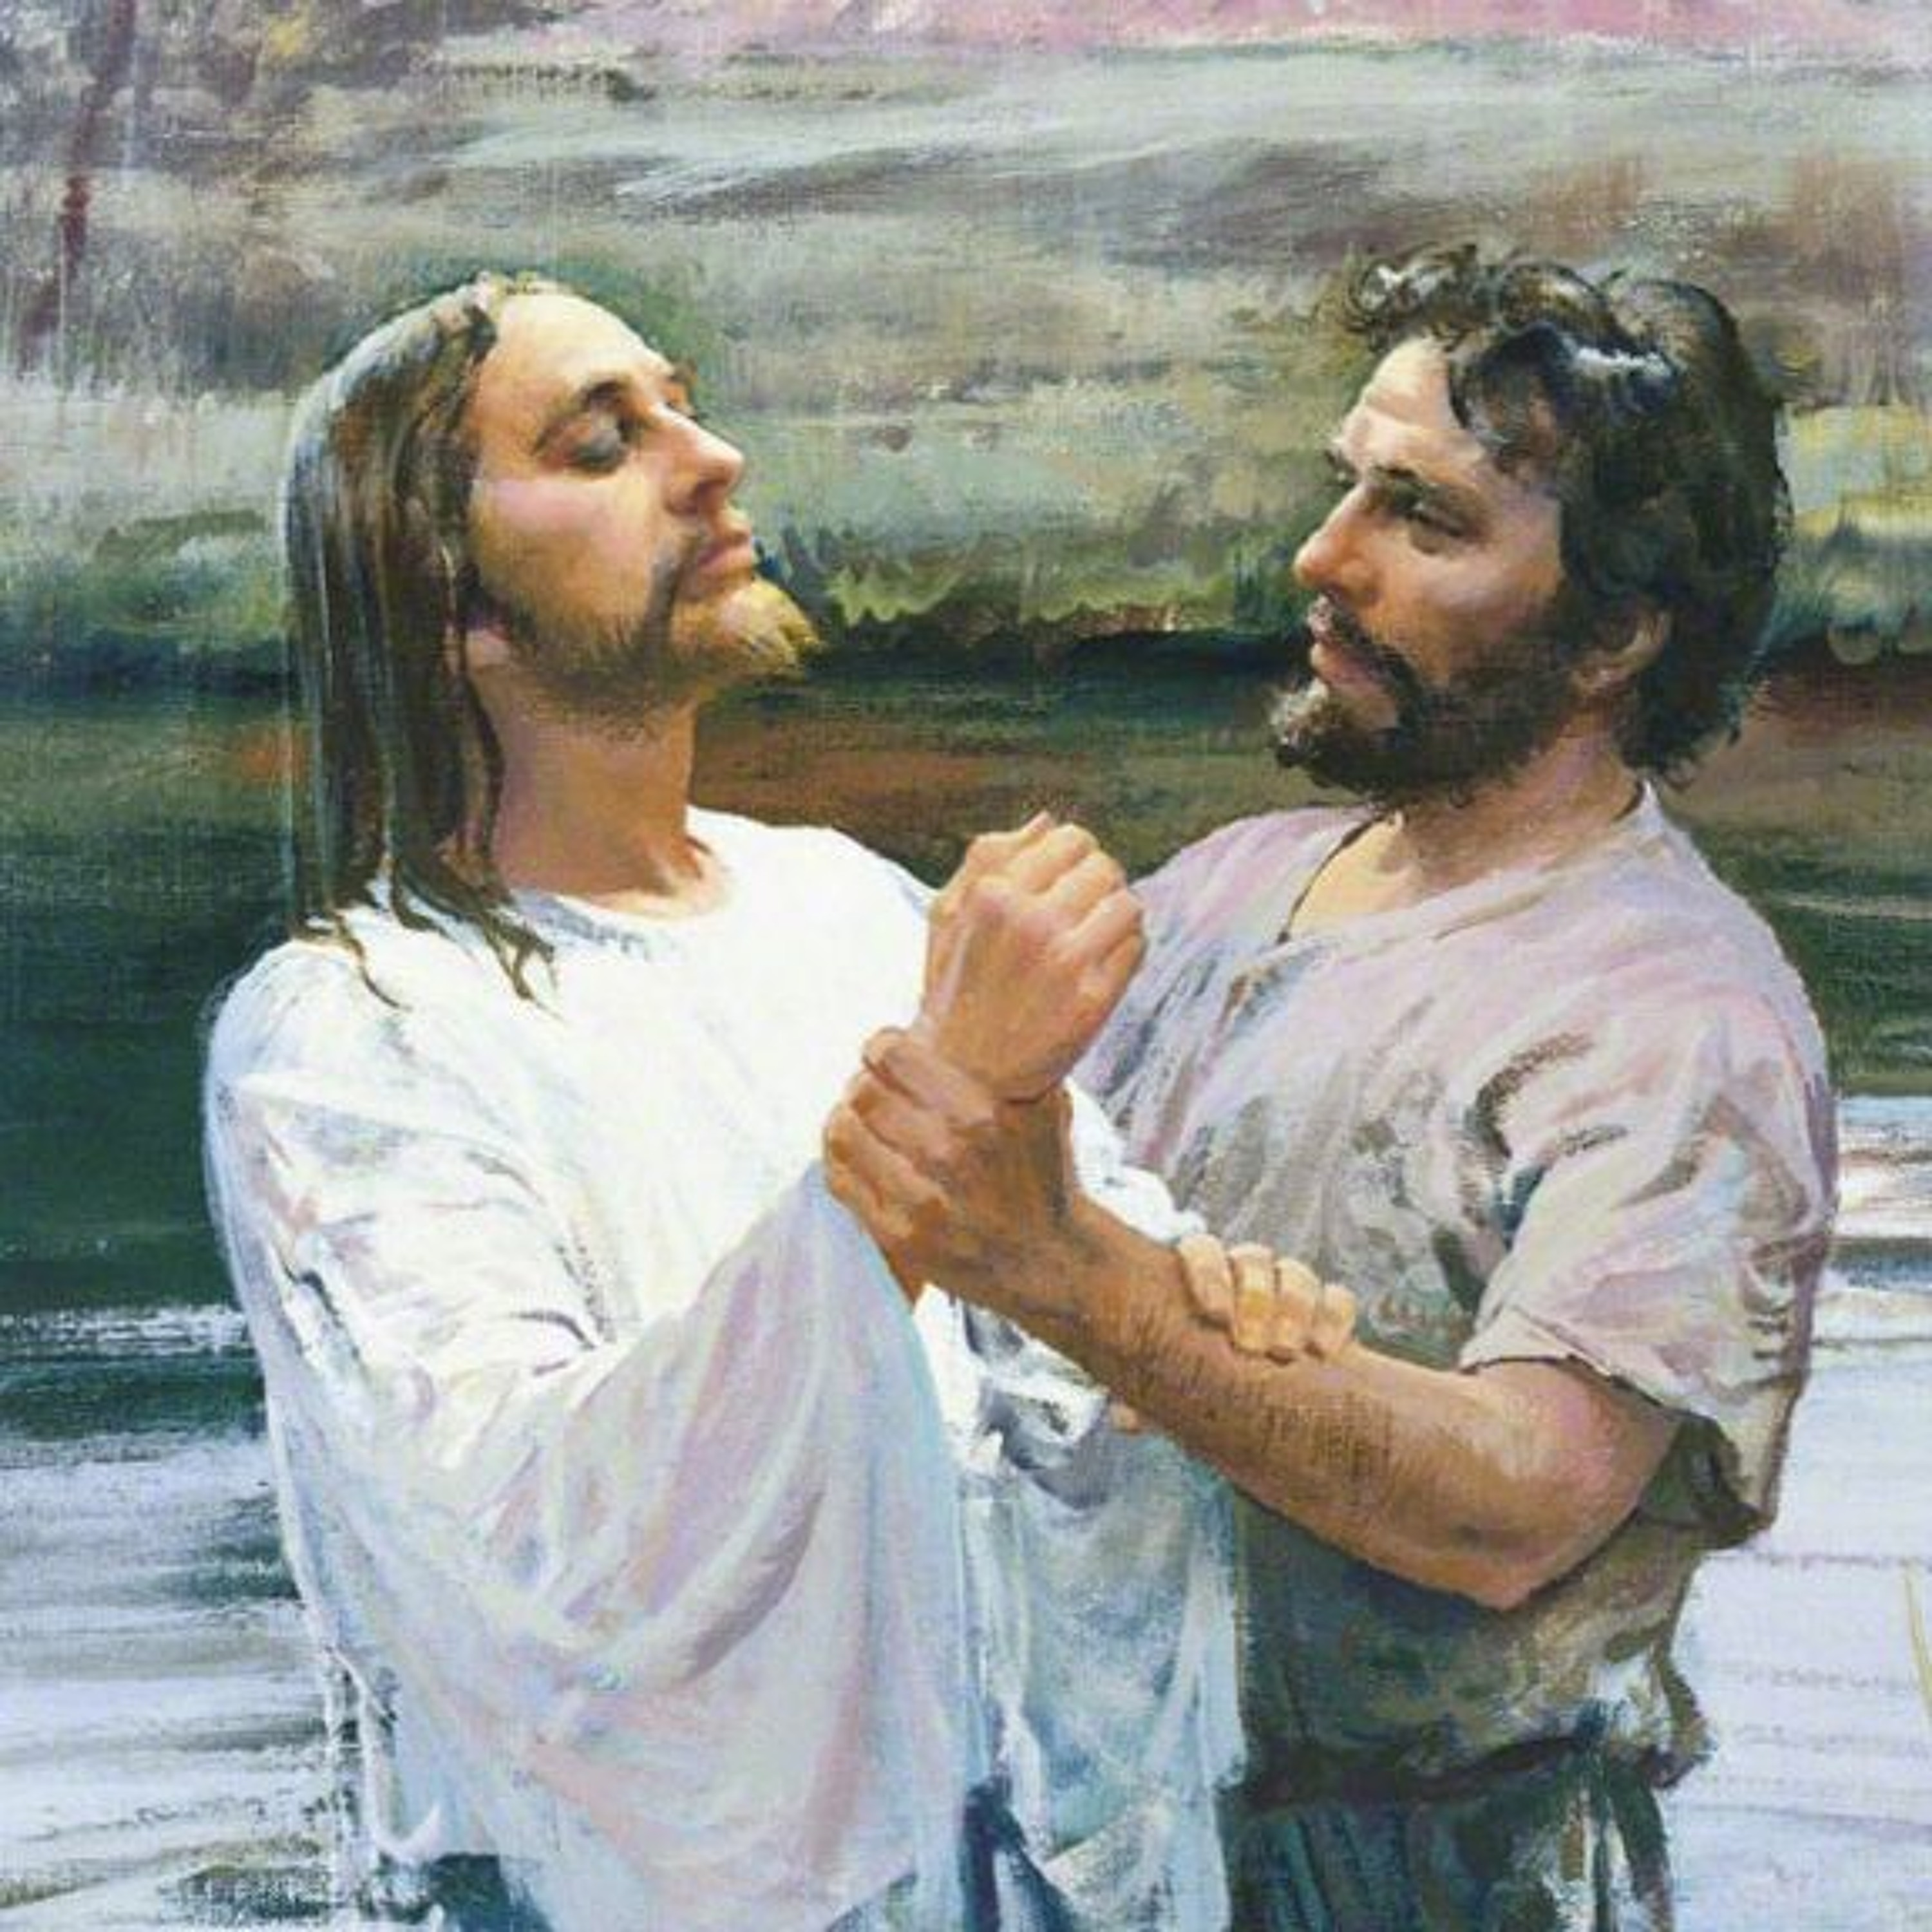 Why Did Joseph And Oliver Seek...